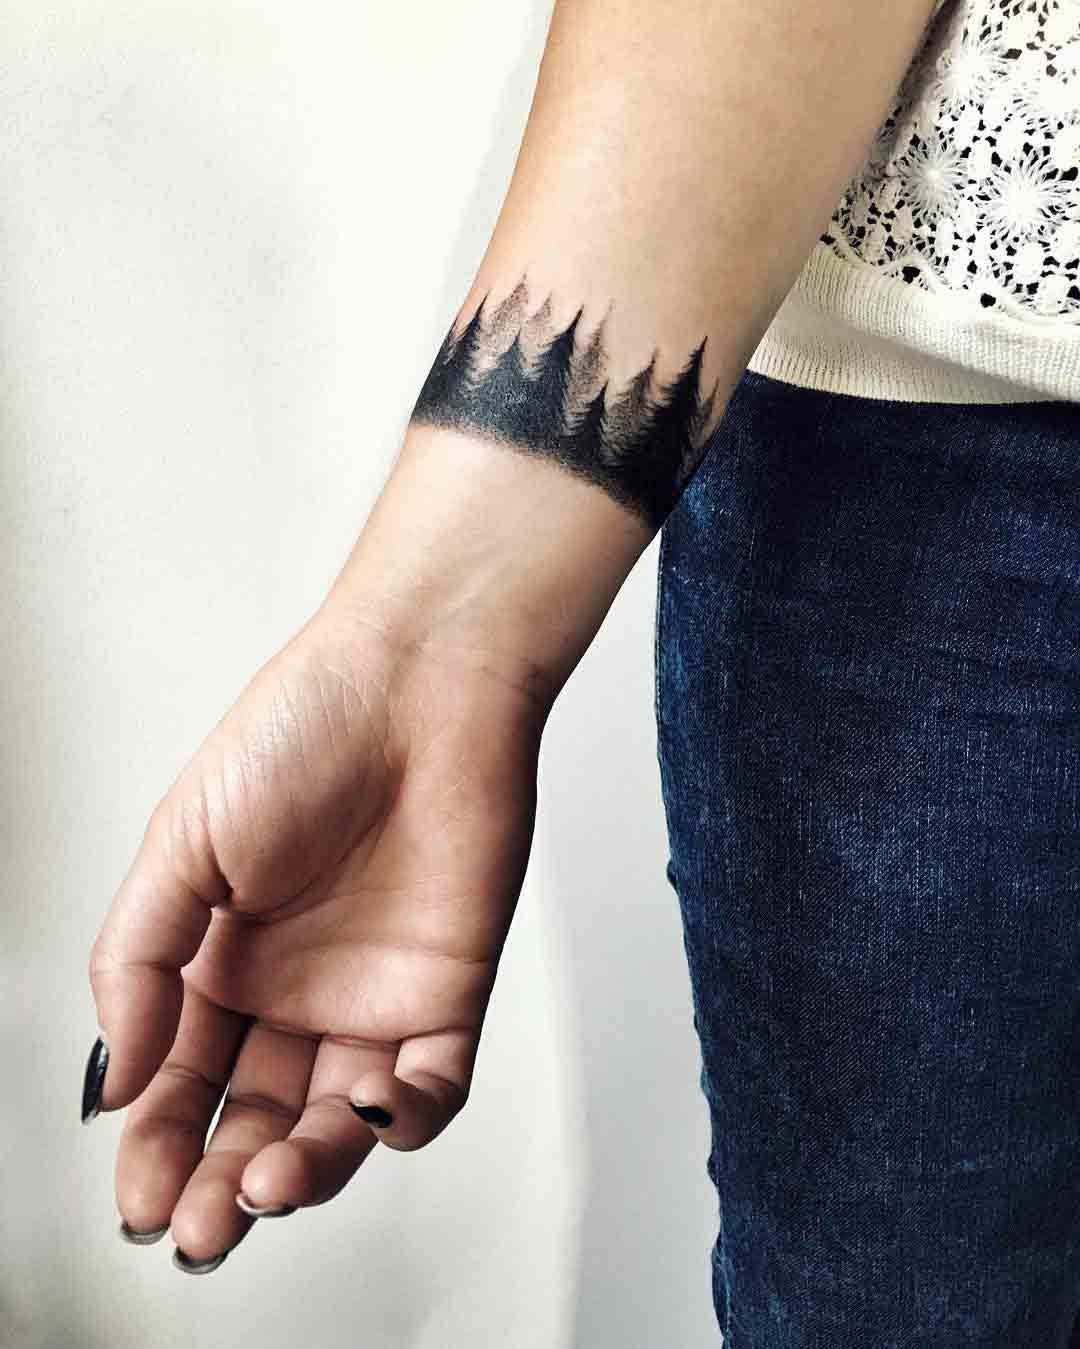 Tattoo Around Wrist With Images Wrist Tattoos For Women